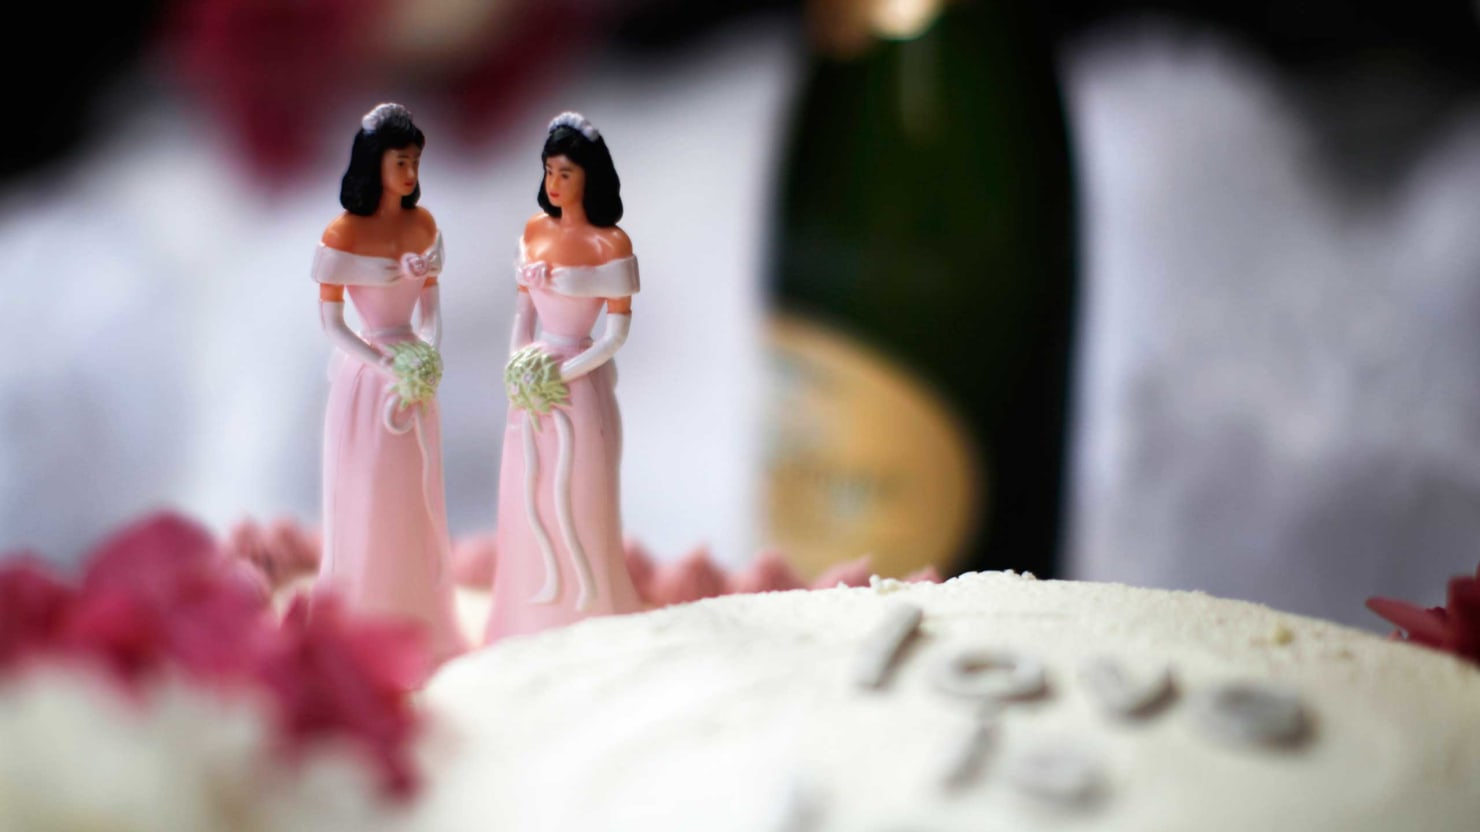 For Christians and Gay Marriage, It's Culture, not Doctrine